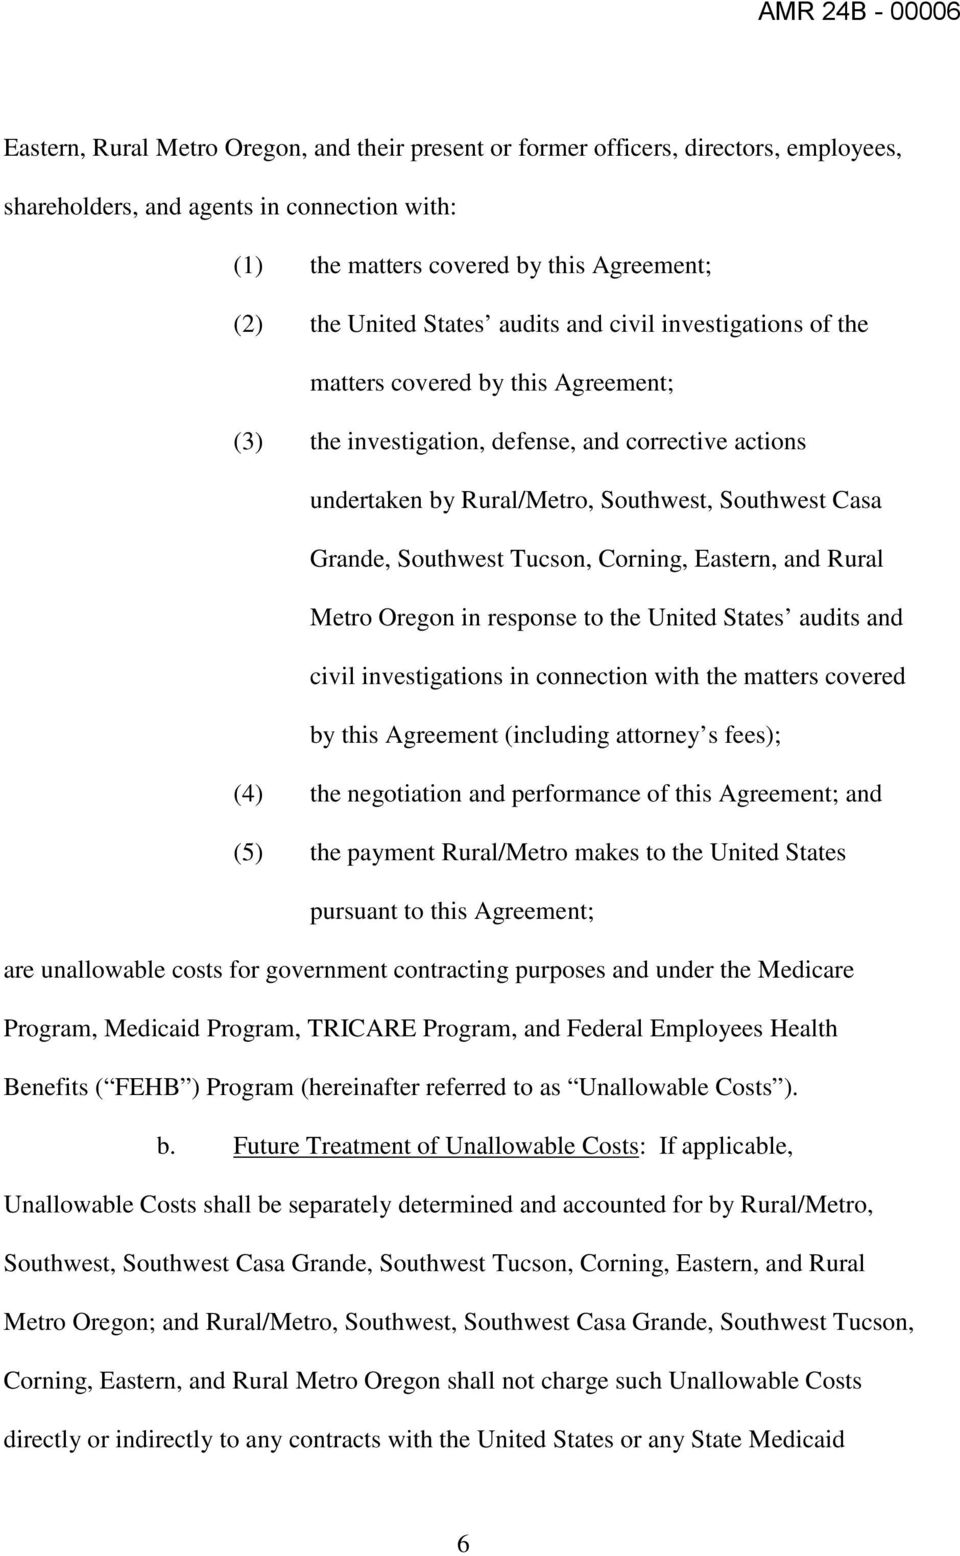 Grande, Southwest Tucson, Corning, Eastern, and Rural Metro Oregon in response to the United States audits and civil investigations in connection with the matters covered by this Agreement (including